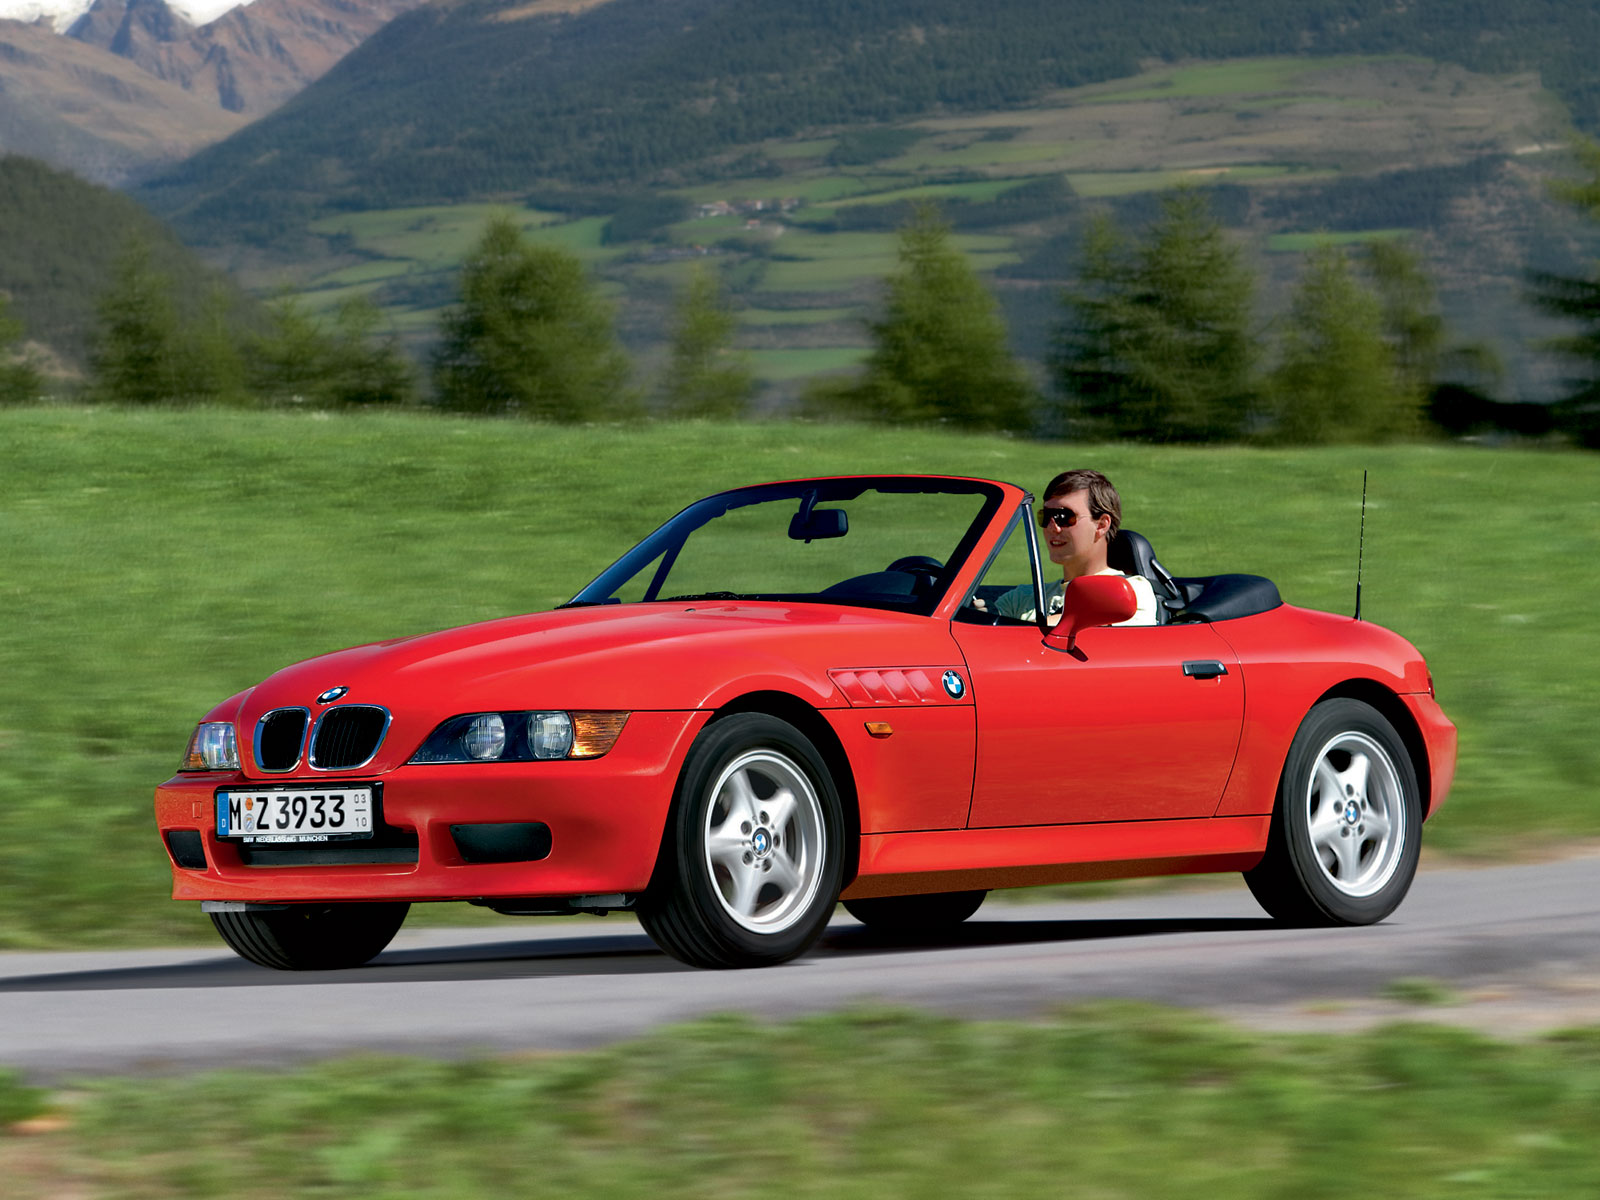 1996 2002 Bmw Z3 E36 7 E36 8 Autoguru Katalog At